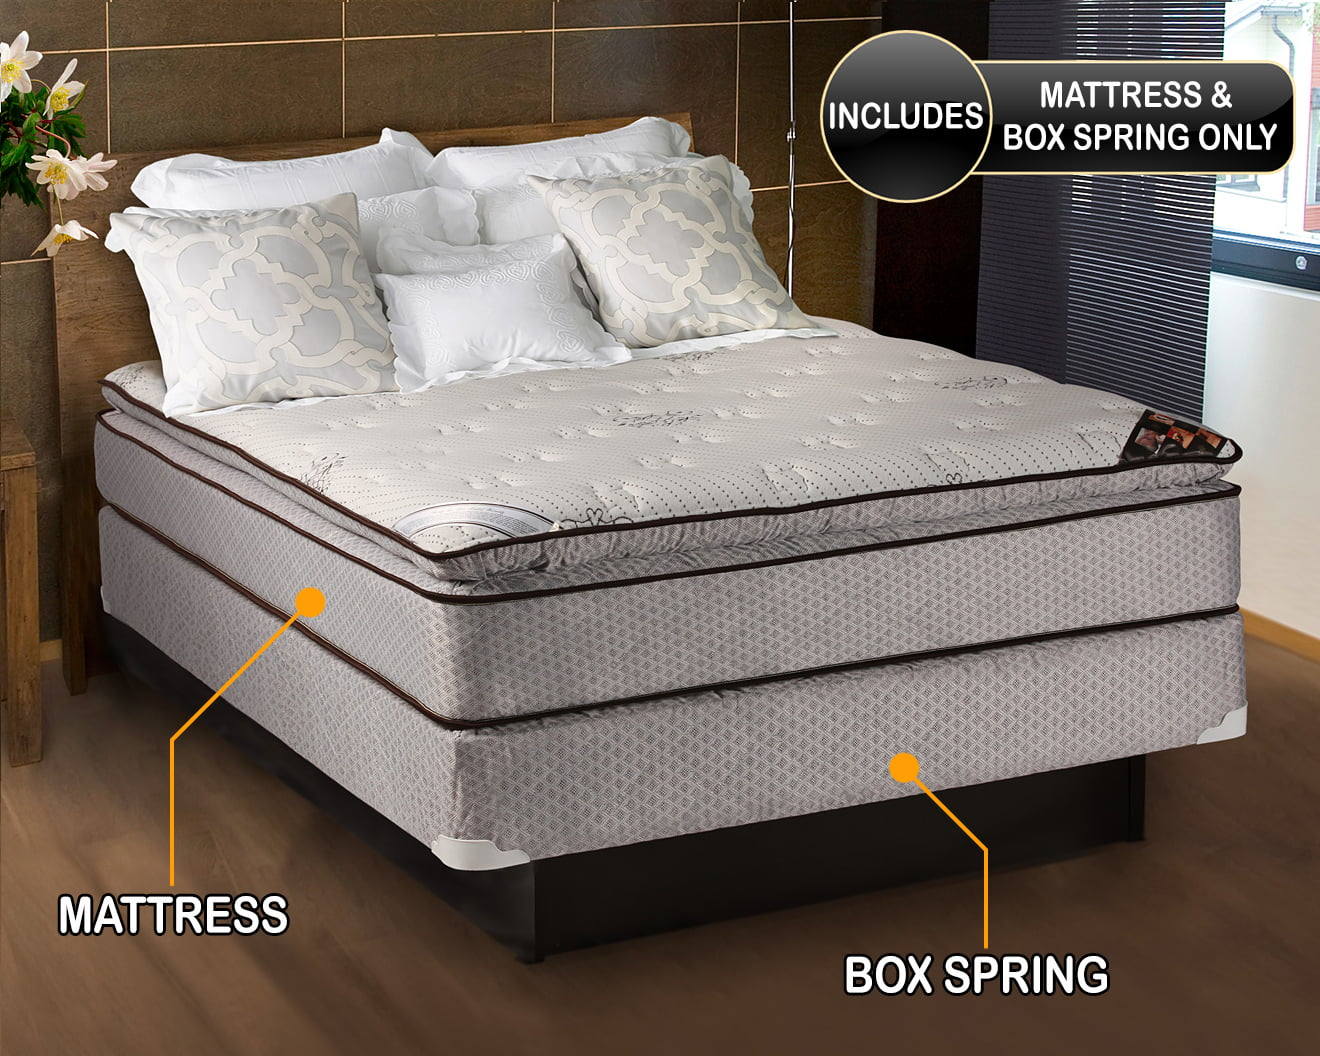 spinal dream plush pillow top eurotop mattress and box spring set queen size sleep system with enhanced cushion support fully assembled great